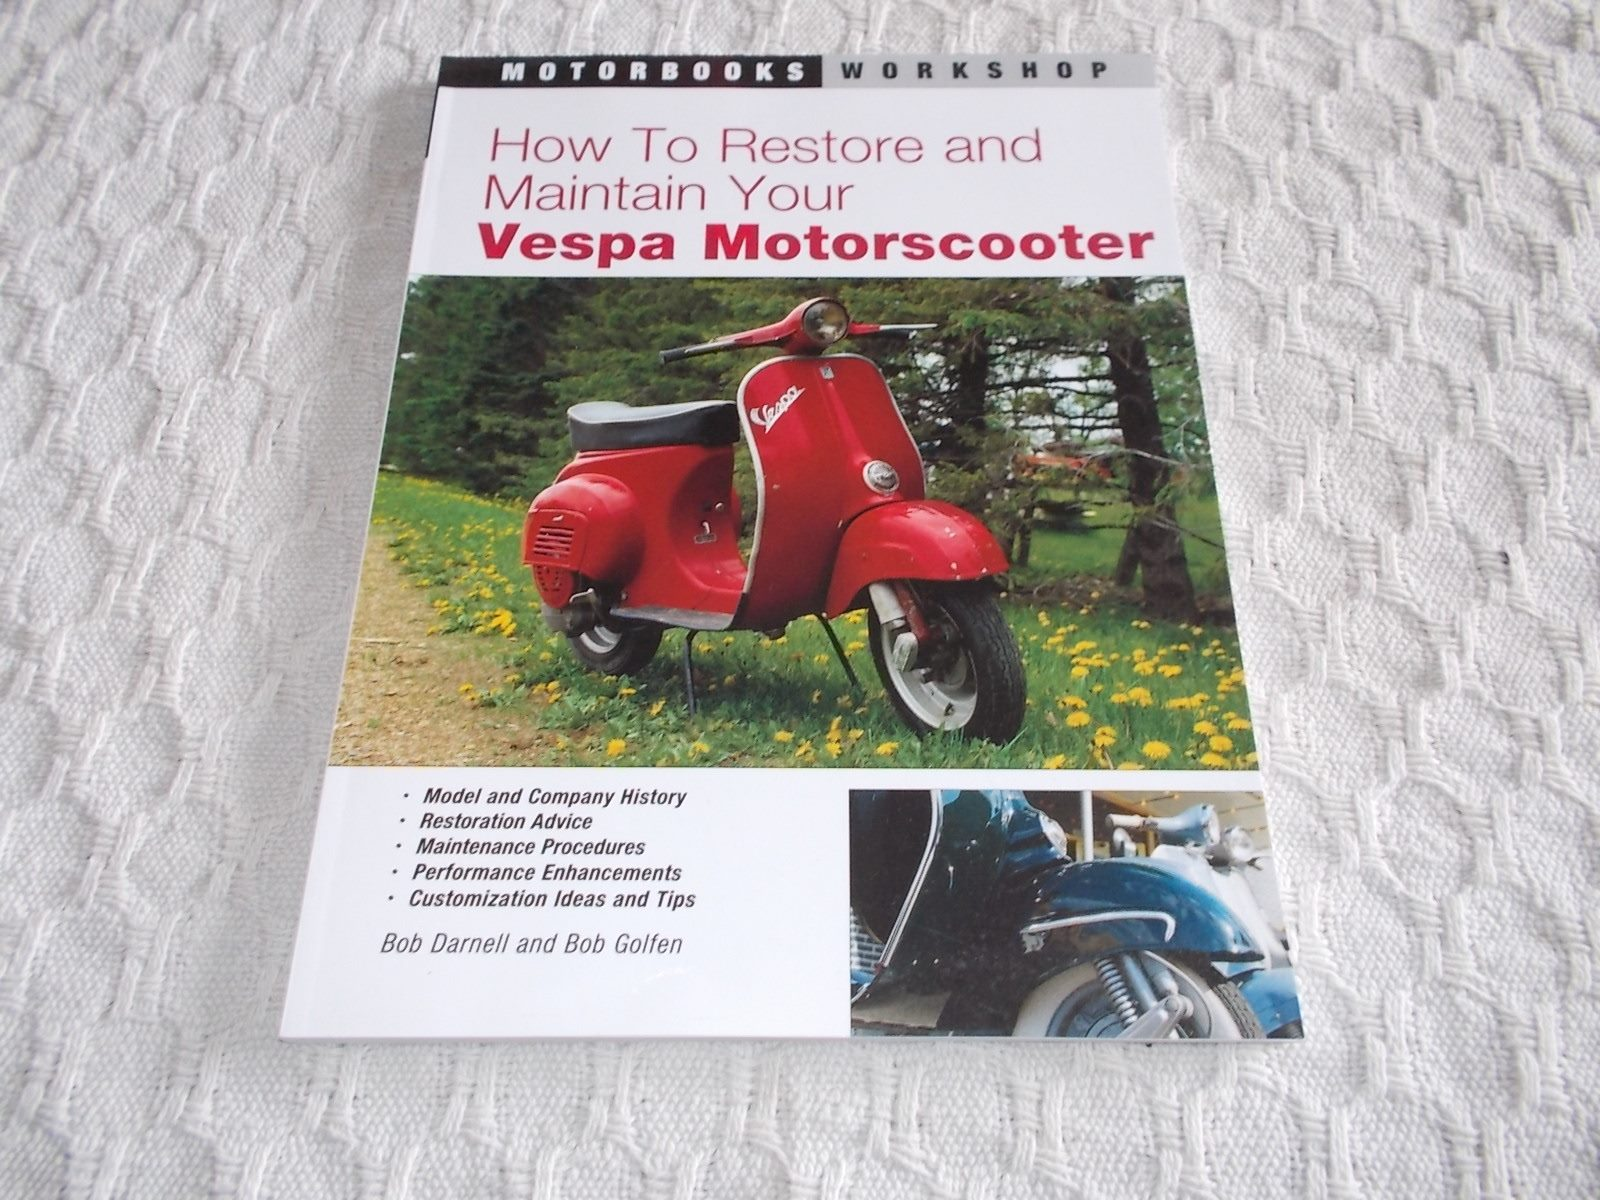 How to Restore and Maintain Your Vespa Motorscooter